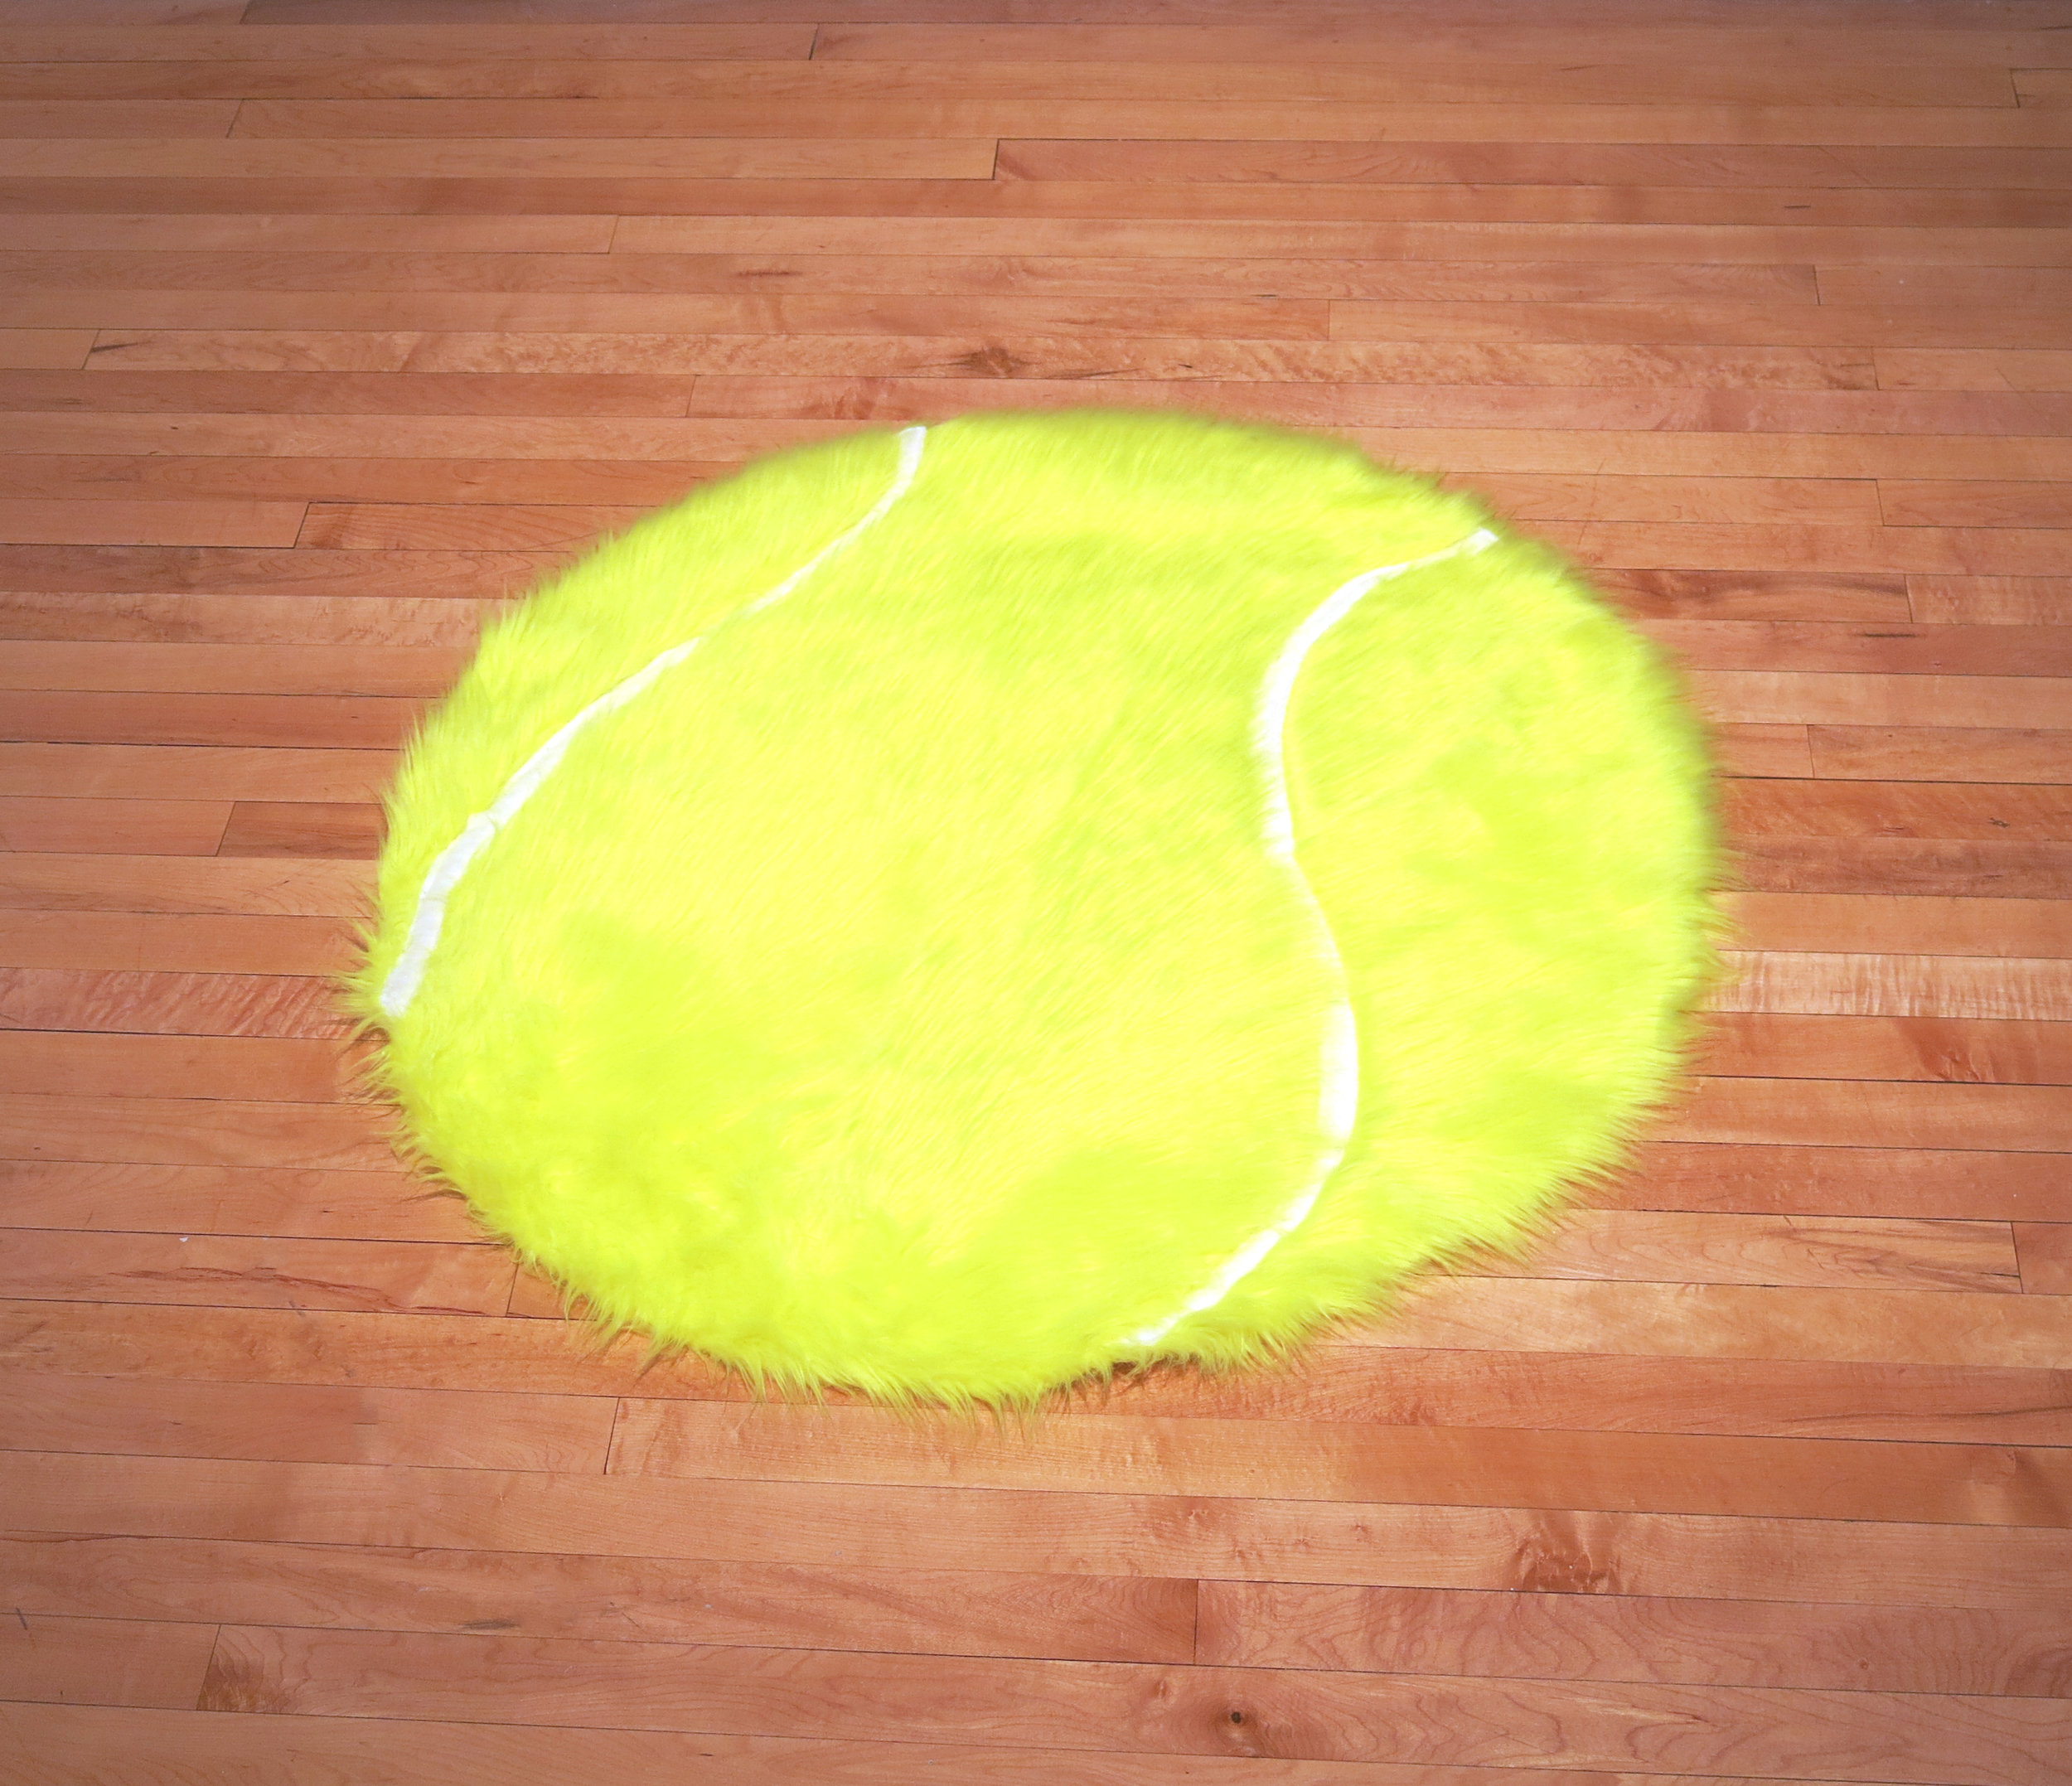 Ash Ferlito, Love Means Nothing to a Tennis Player, Faux fur, 2014. (Image courtesy the artist and the Marjorie Barrick Museum)